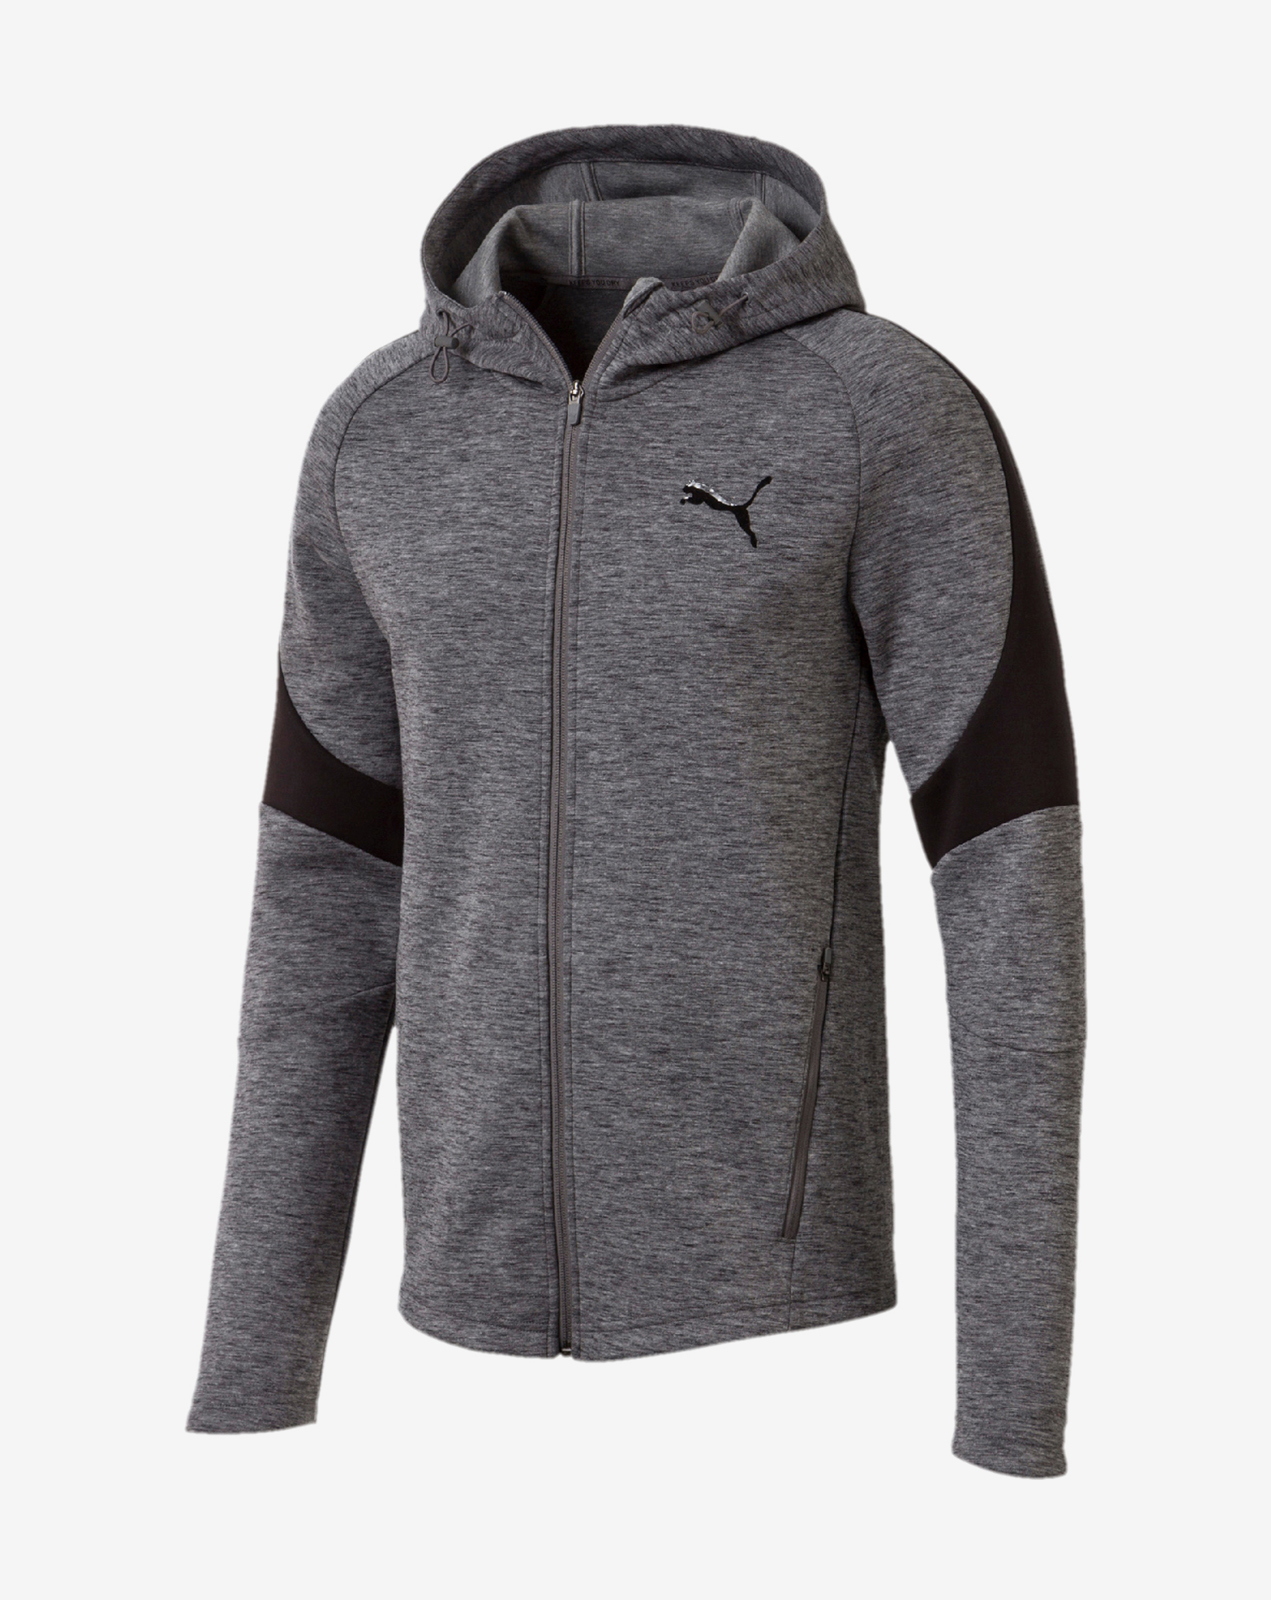 detail Evostripe FZ Hoody Medium Gray Heather